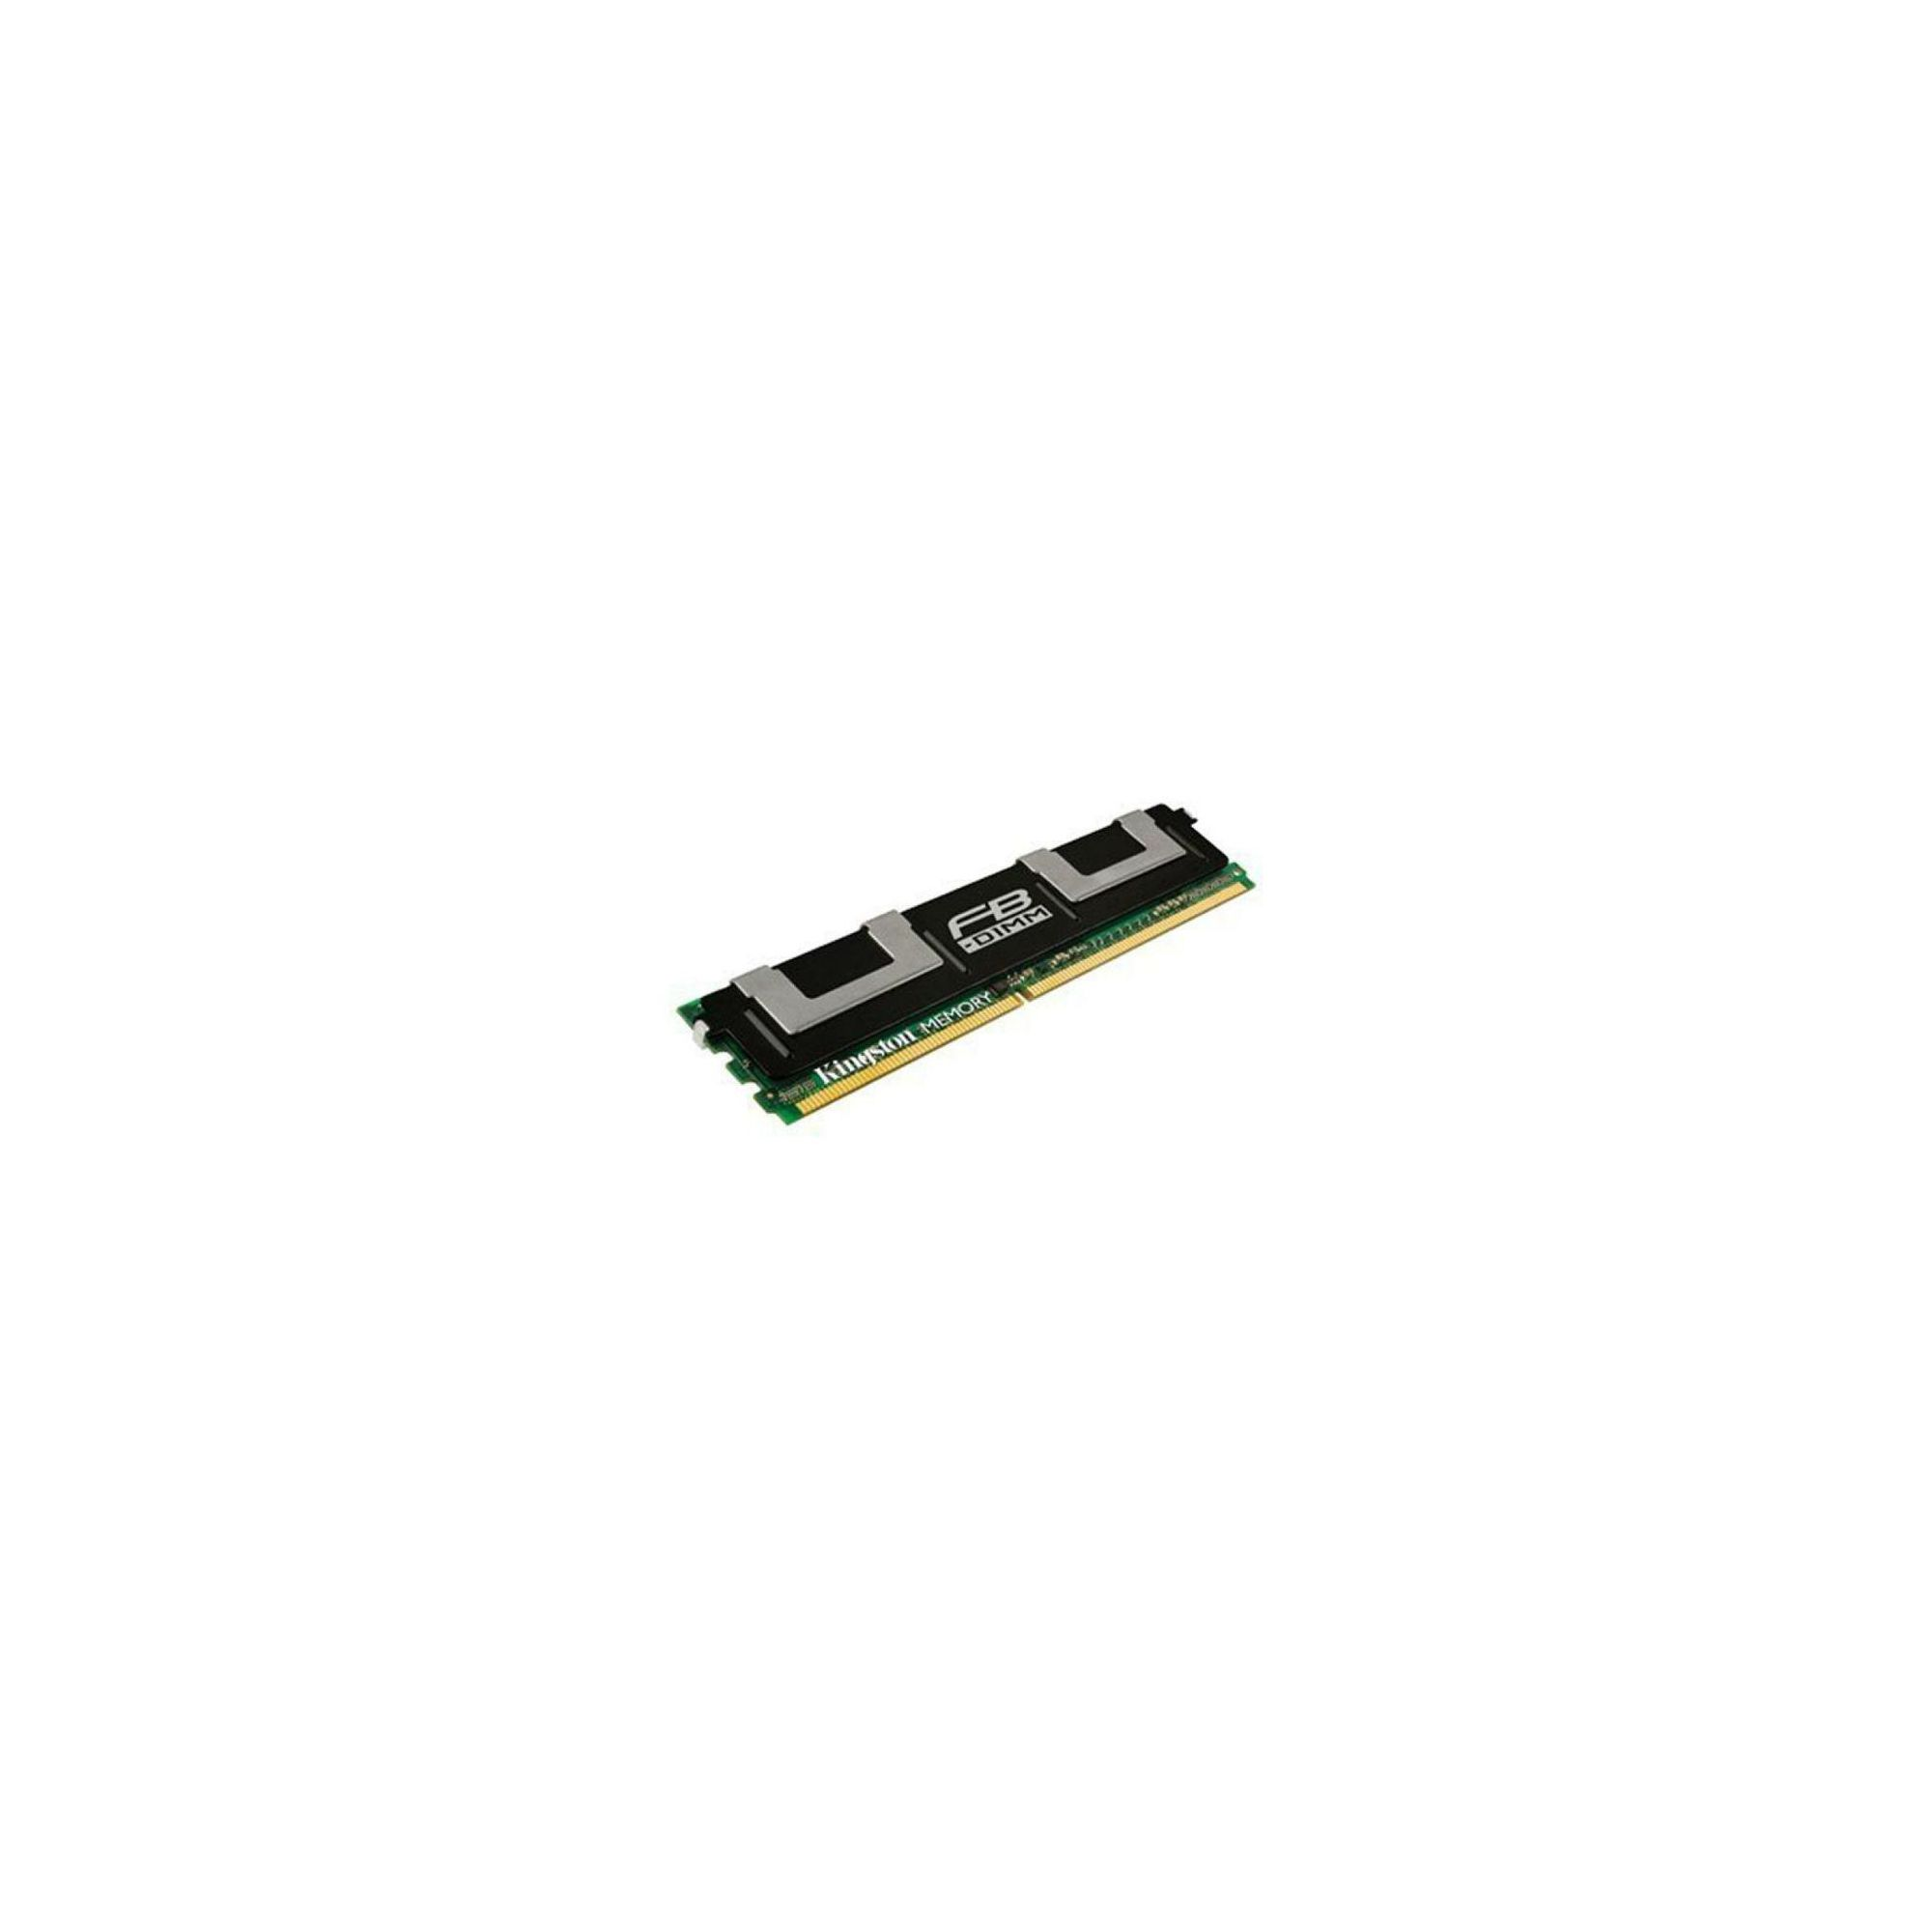 Kingston 16GB (2 x 8GB) DDR2-667 Memory Module Kit at Tesco Direct